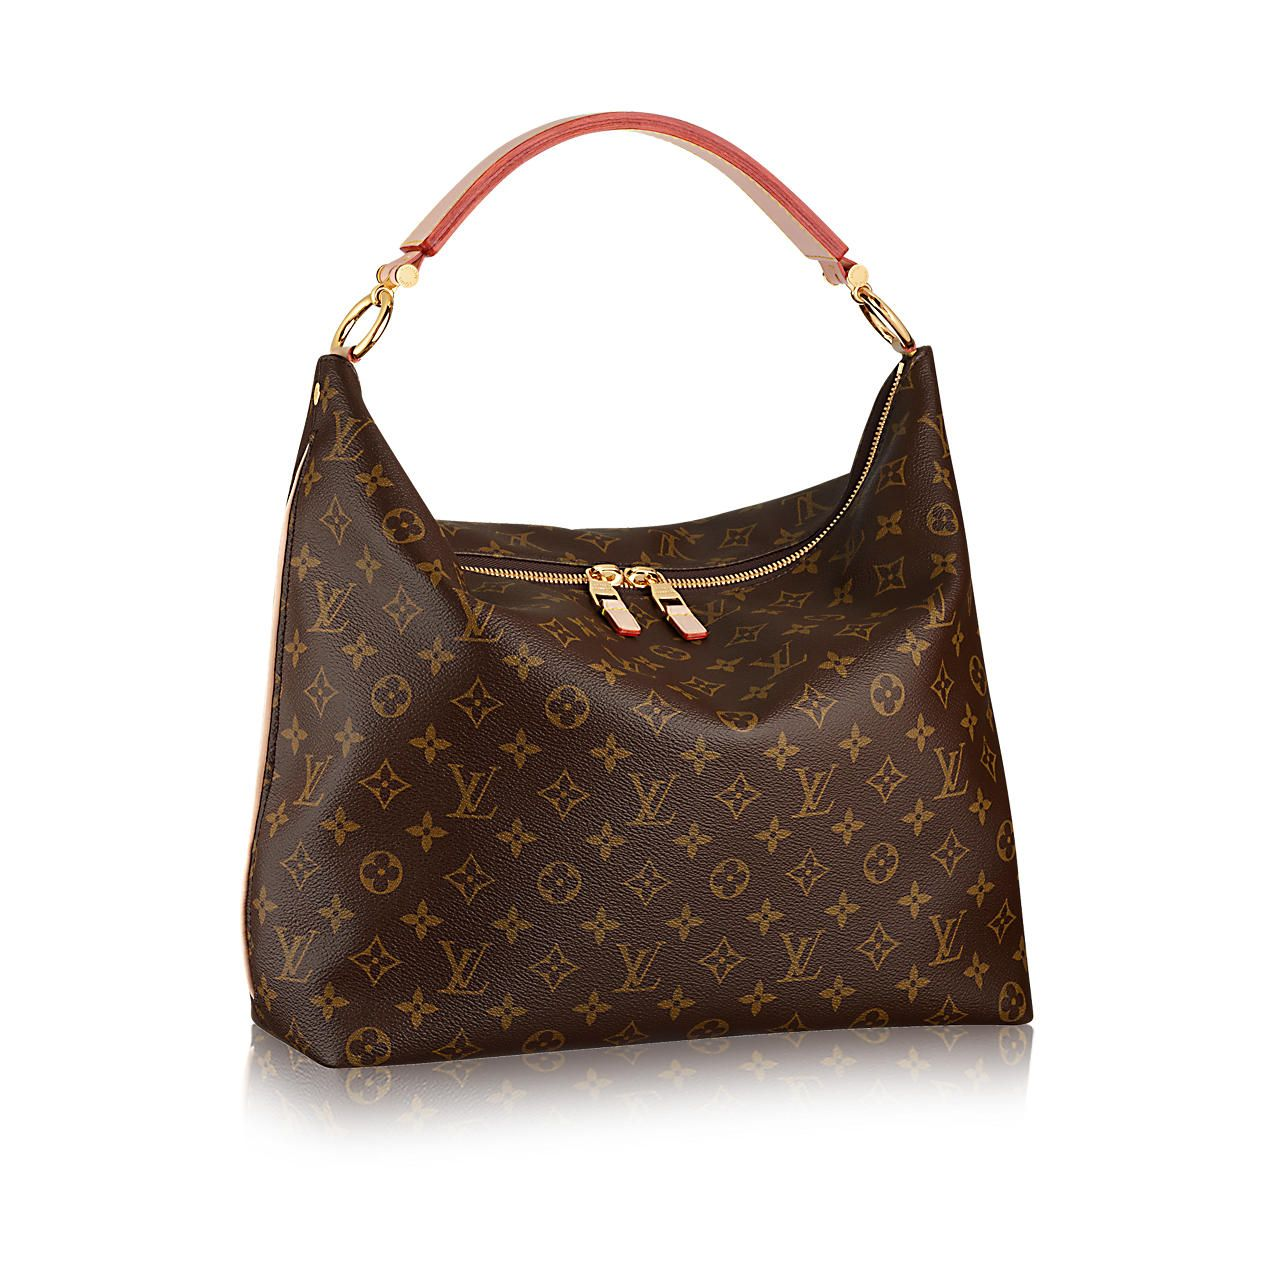 Louis Vuitton Sully Mm Monogram M40587 Designer Handbags For Women Canada